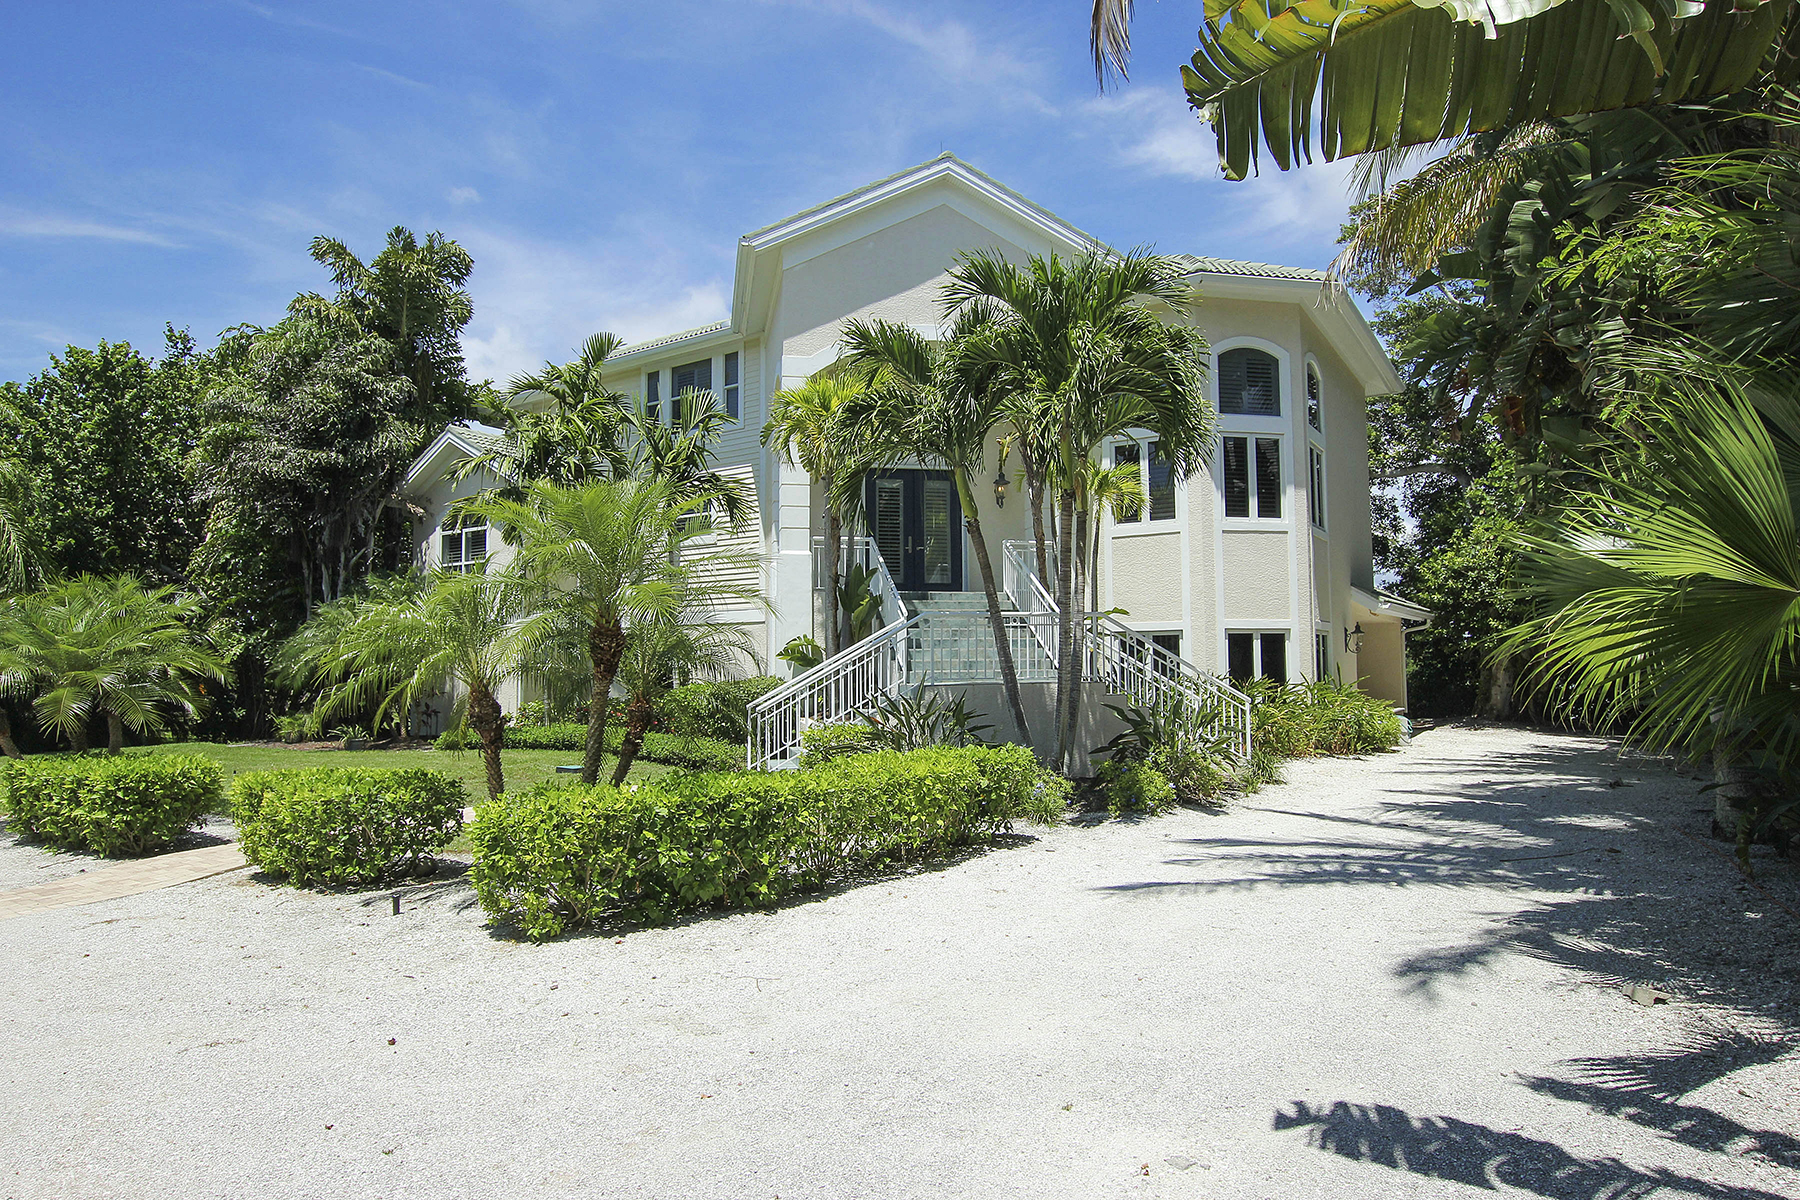 Single Family Home for Sale at 16447 Captiva Dr , Captiva, FL 33924 16447 Captiva Dr Captiva, Florida 33924 United States